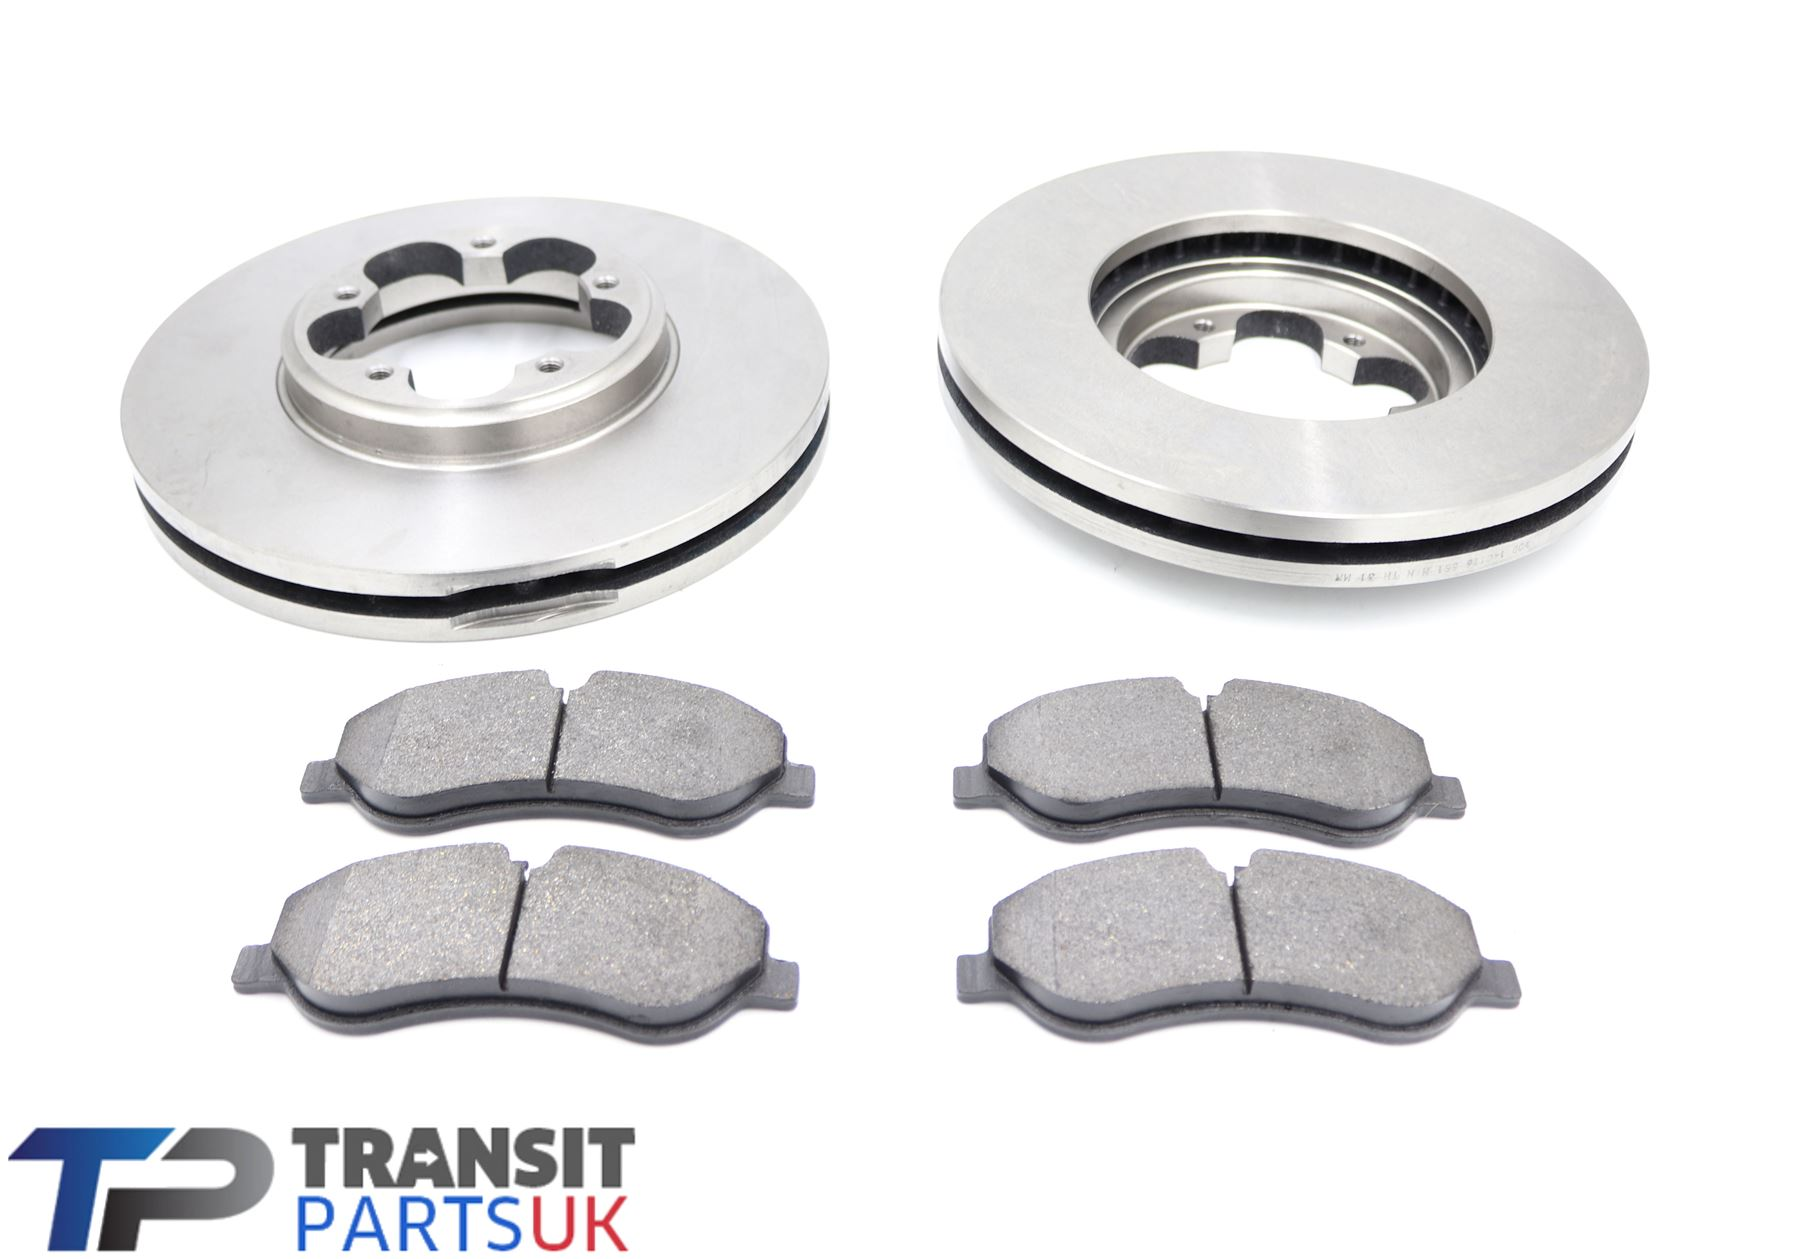 Transit Parts Transit MK7 2.2 FWD Rear Discs And Pads Pair 2006 On Complete Set